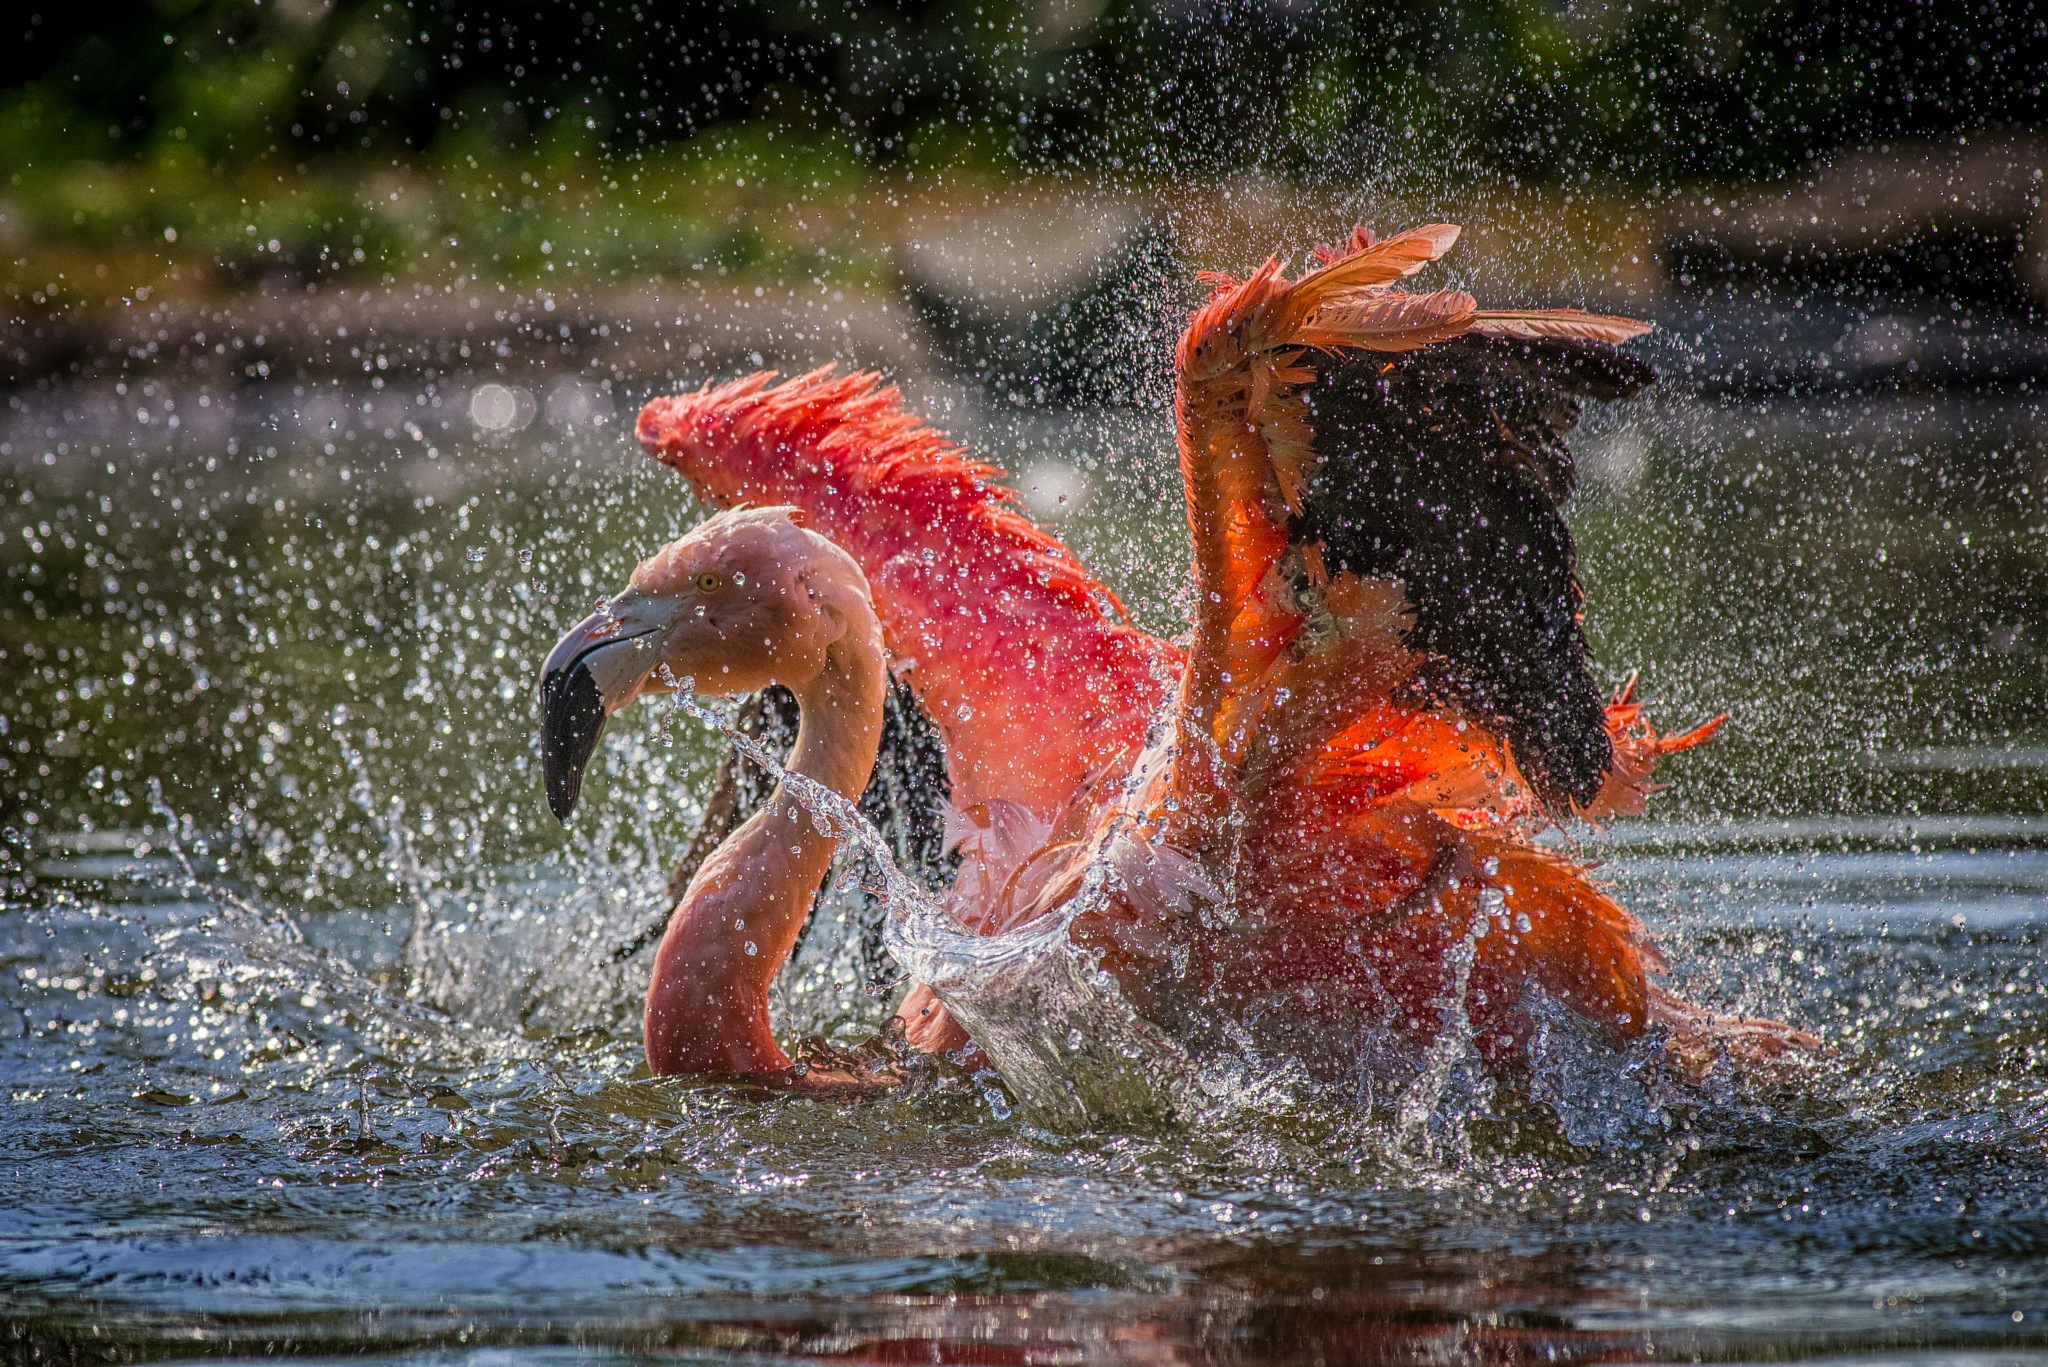 Another splashing Picture by Friedhelm Peters